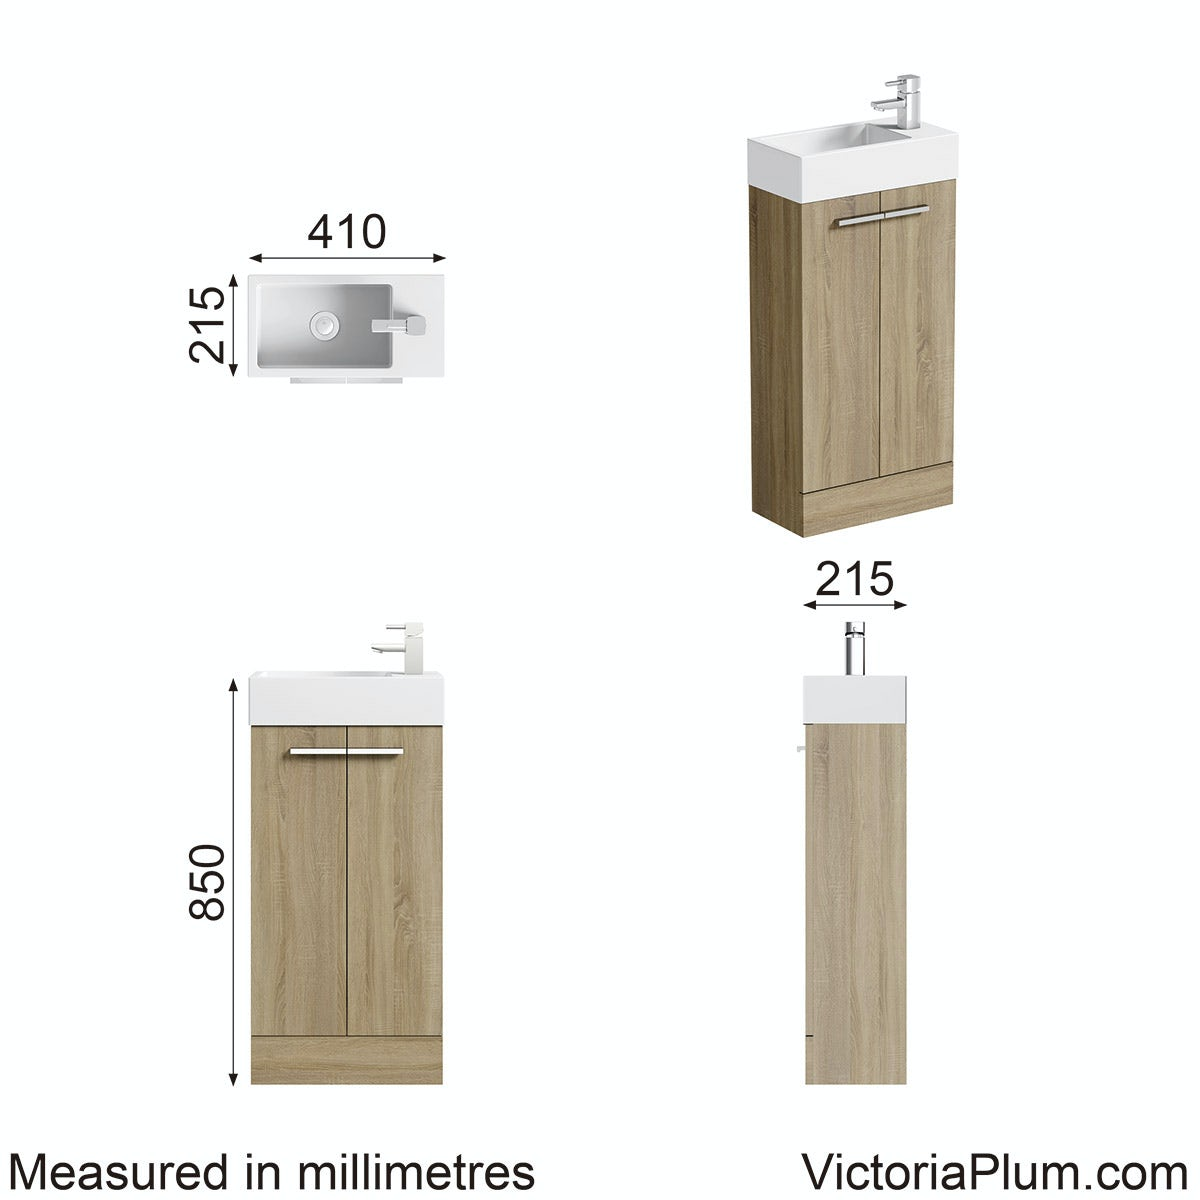 Dimensions for Orchard Oak cloakroom unit with basin 410mm